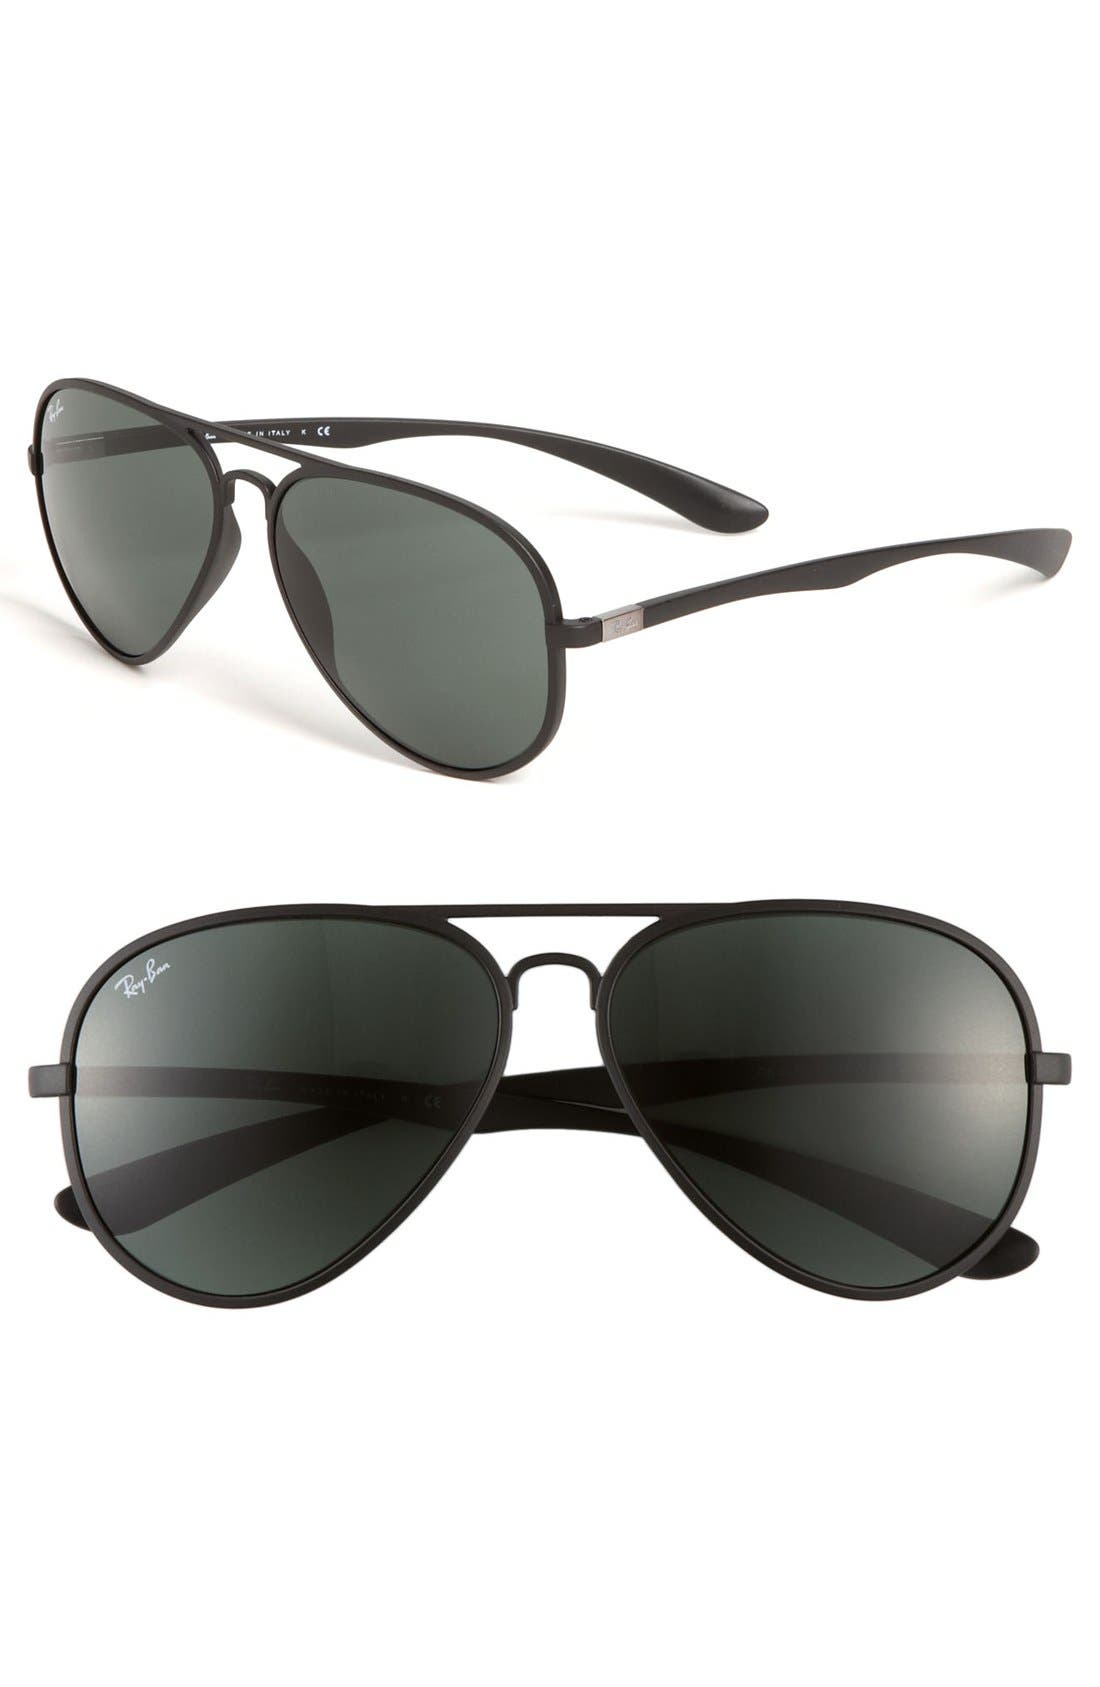 Main Image - Ray-Ban 58mm Aviator Sunglasses